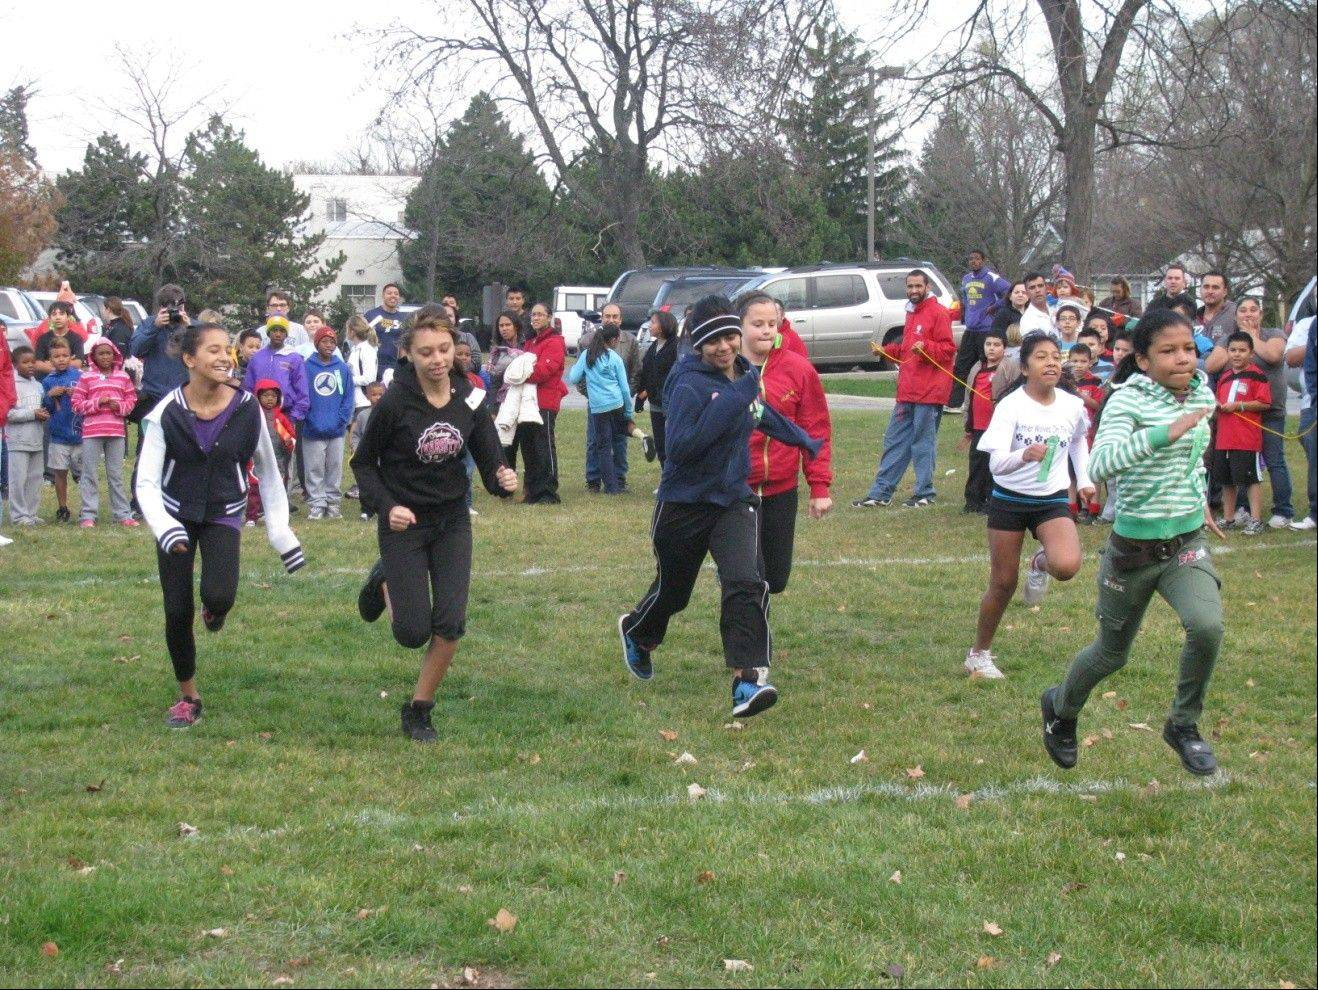 The race is on at the Waukegan Park District Turkey Trot on Nov. 10.